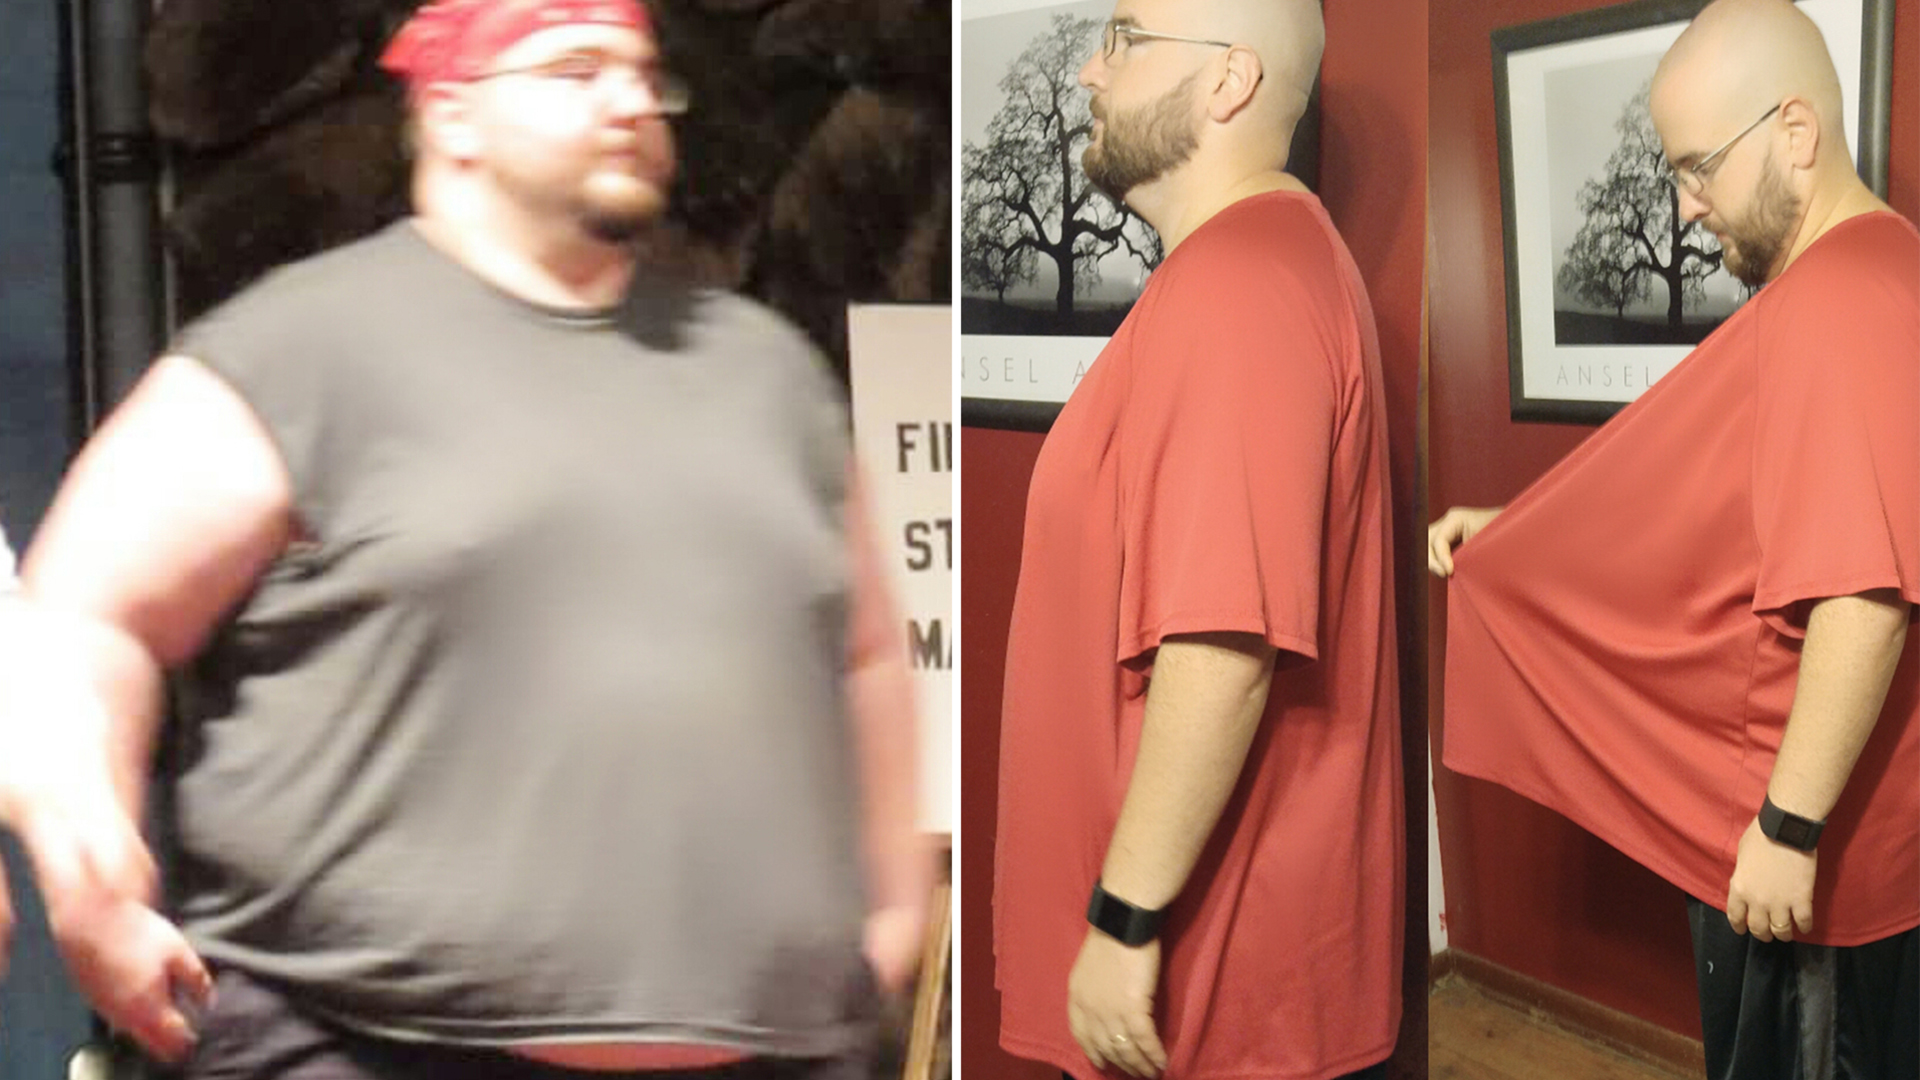 How to lose 200 pounds 7 steps he took to lose weight in 1 year ccuart Images